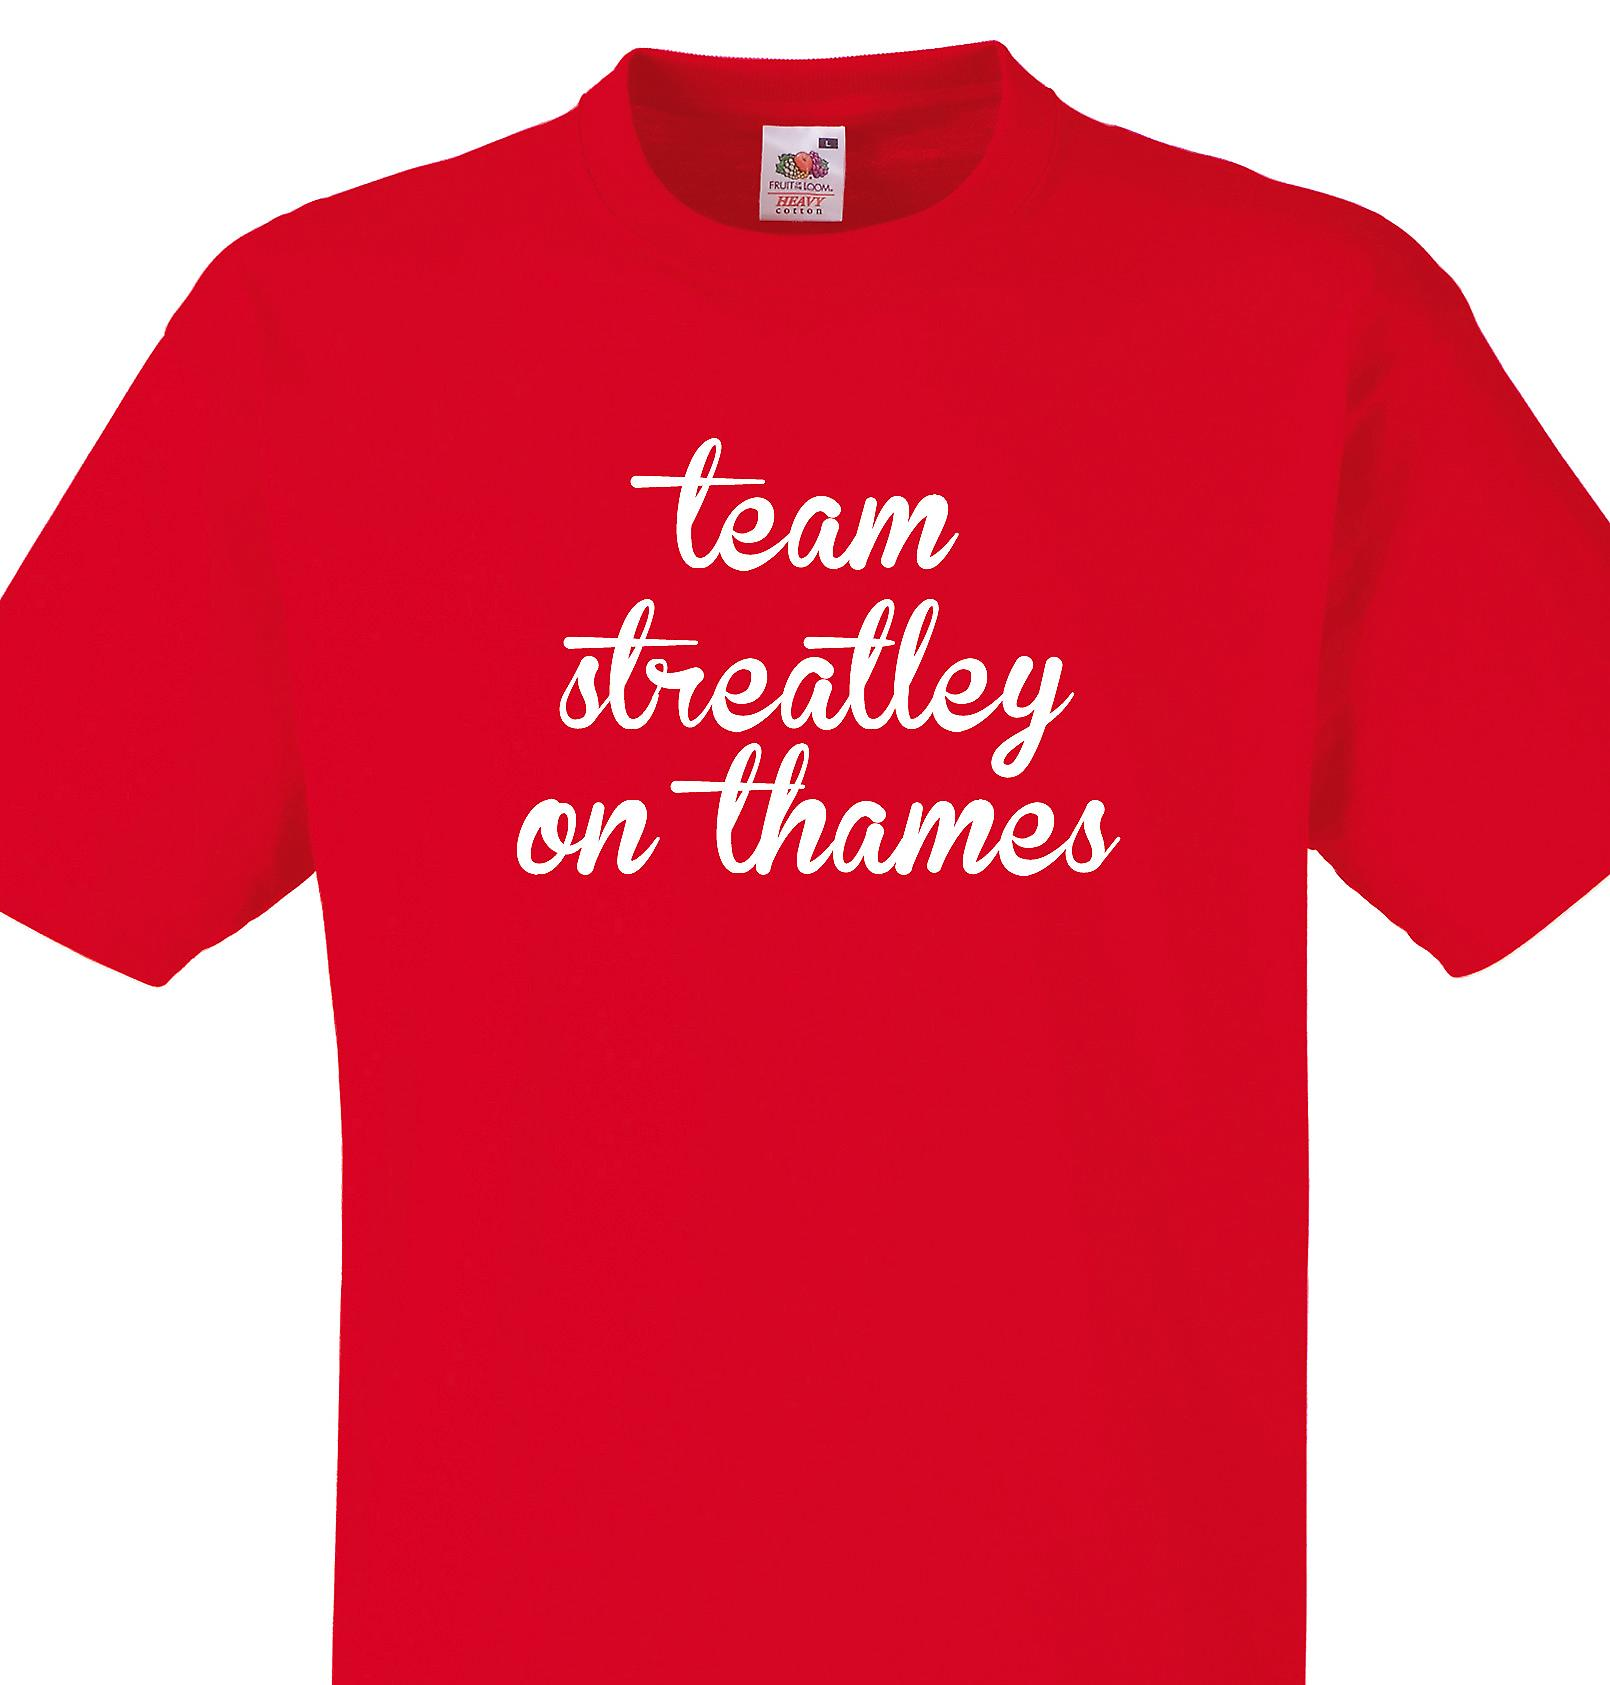 Team Streatley on thames Red T shirt